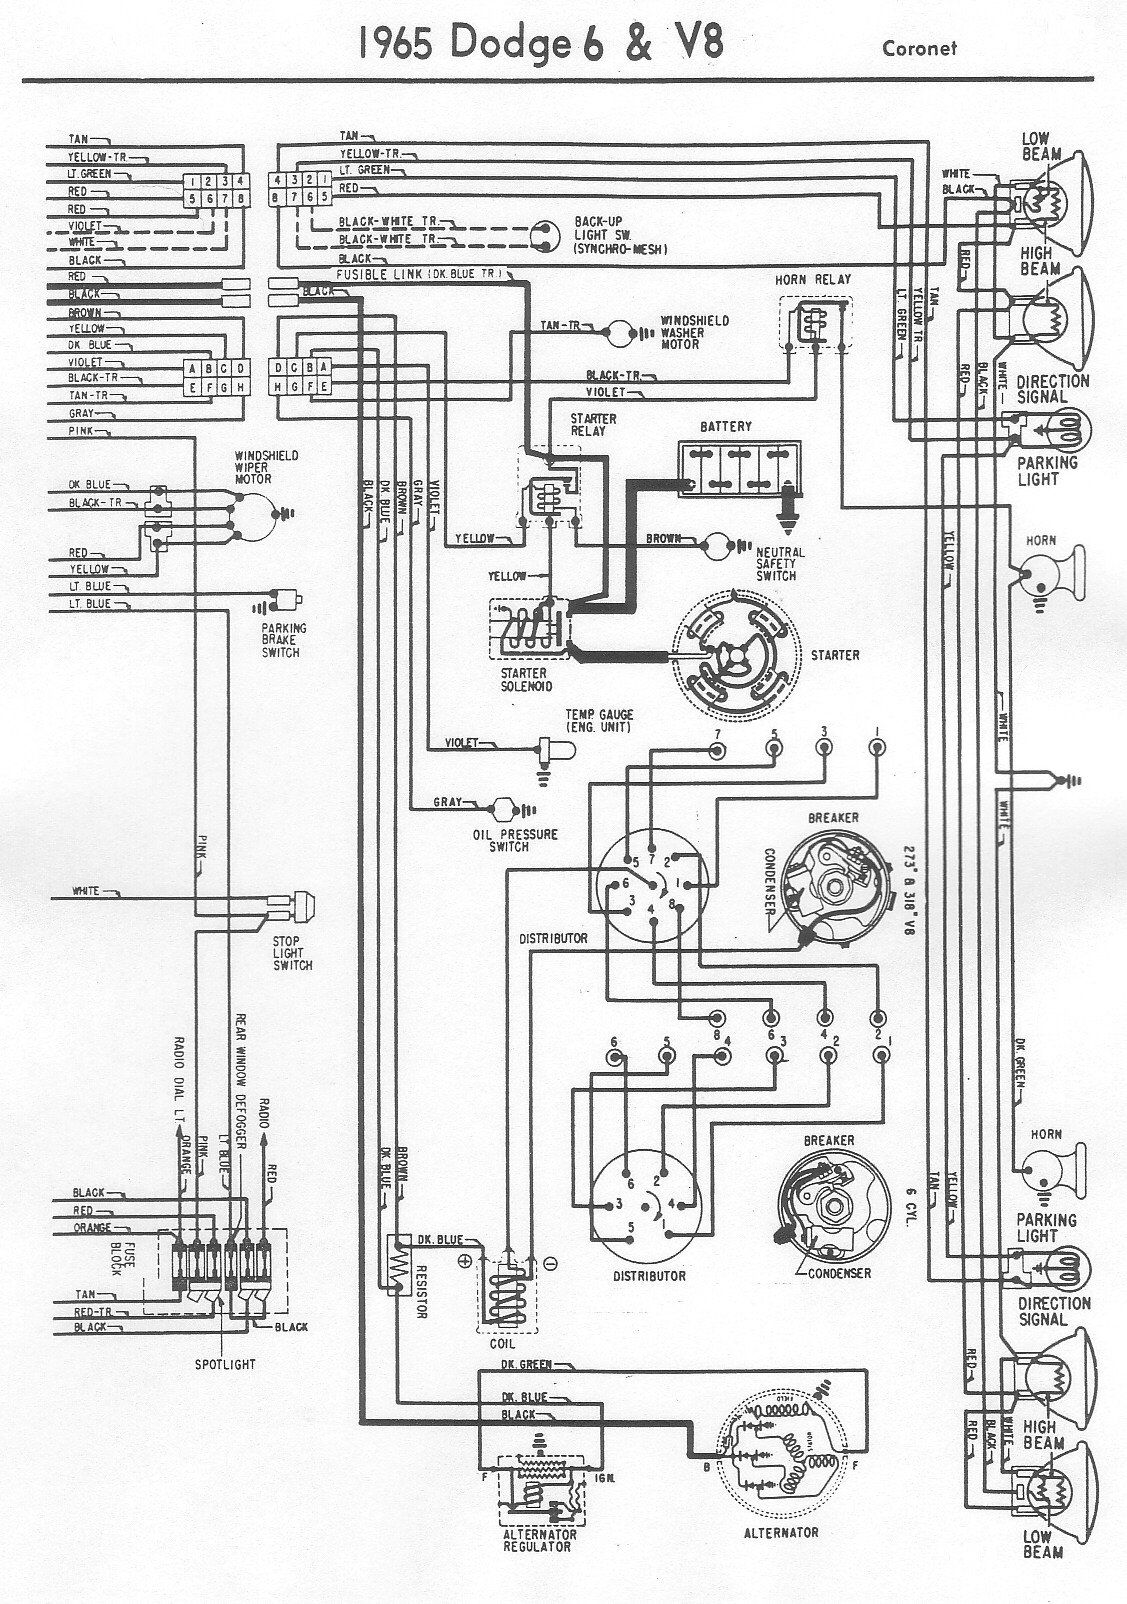 1970 Chrysler 300 Wiring Diagram - Schematics Online on